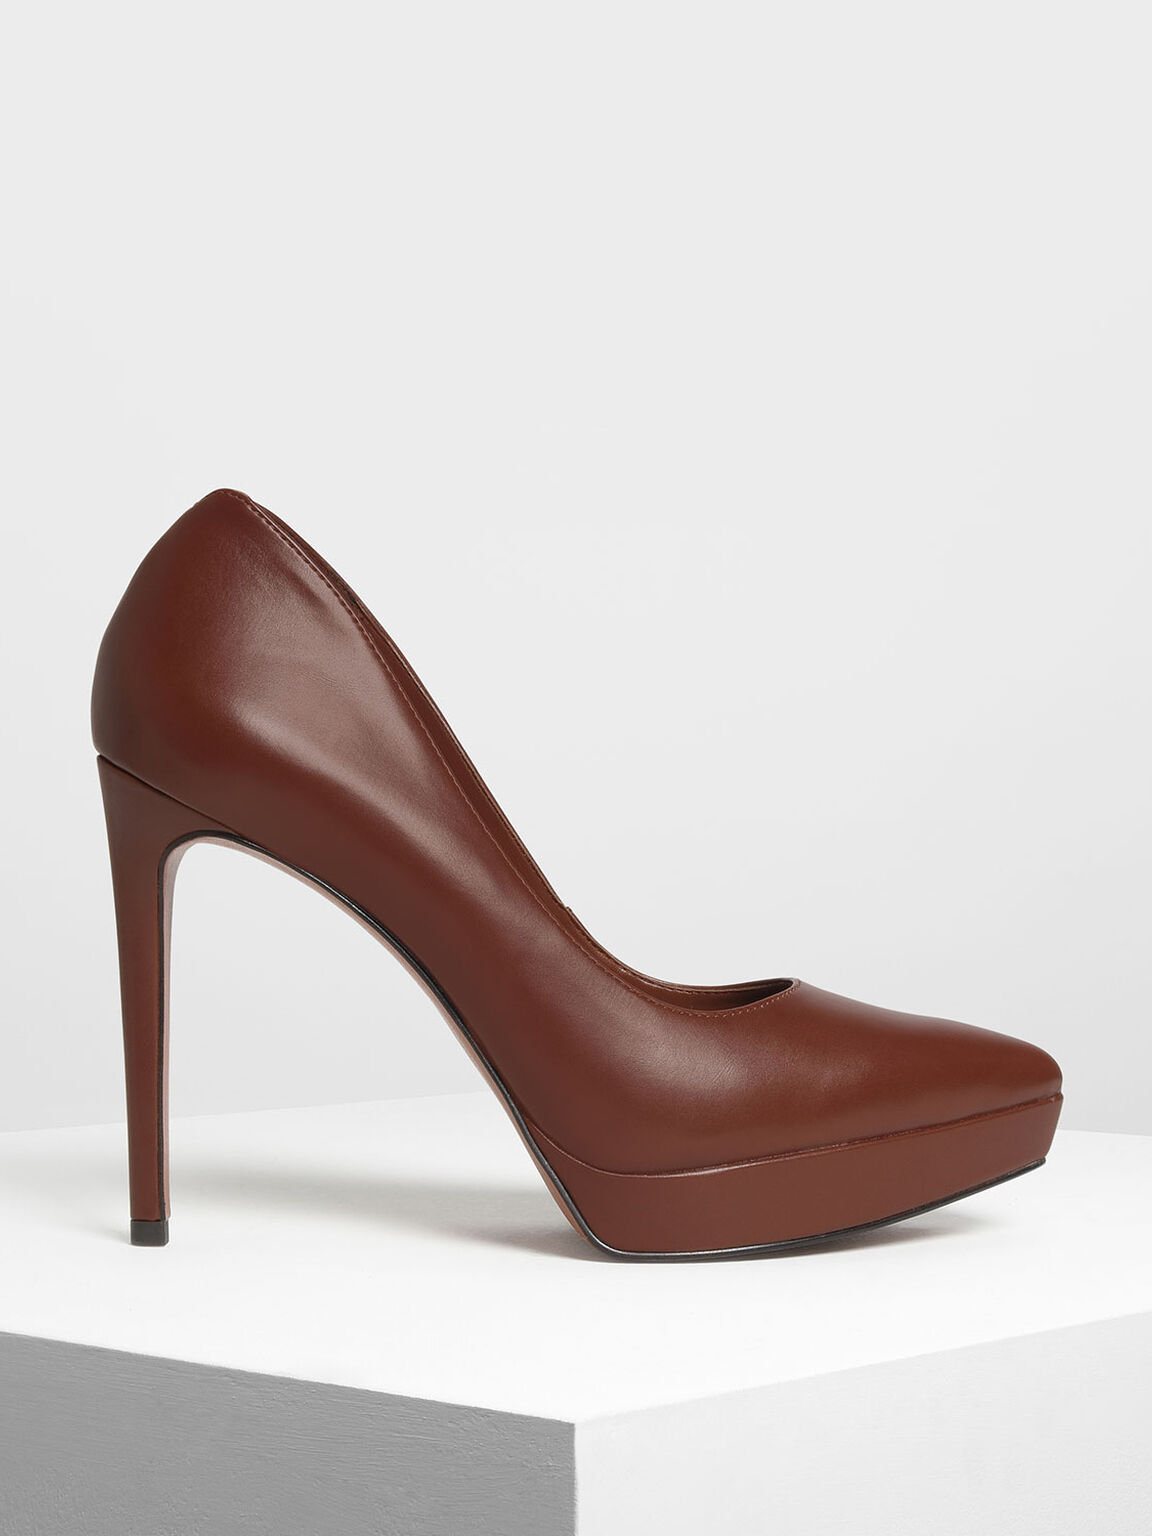 Pointed Toe Platform Pumps, Cognac, hi-res